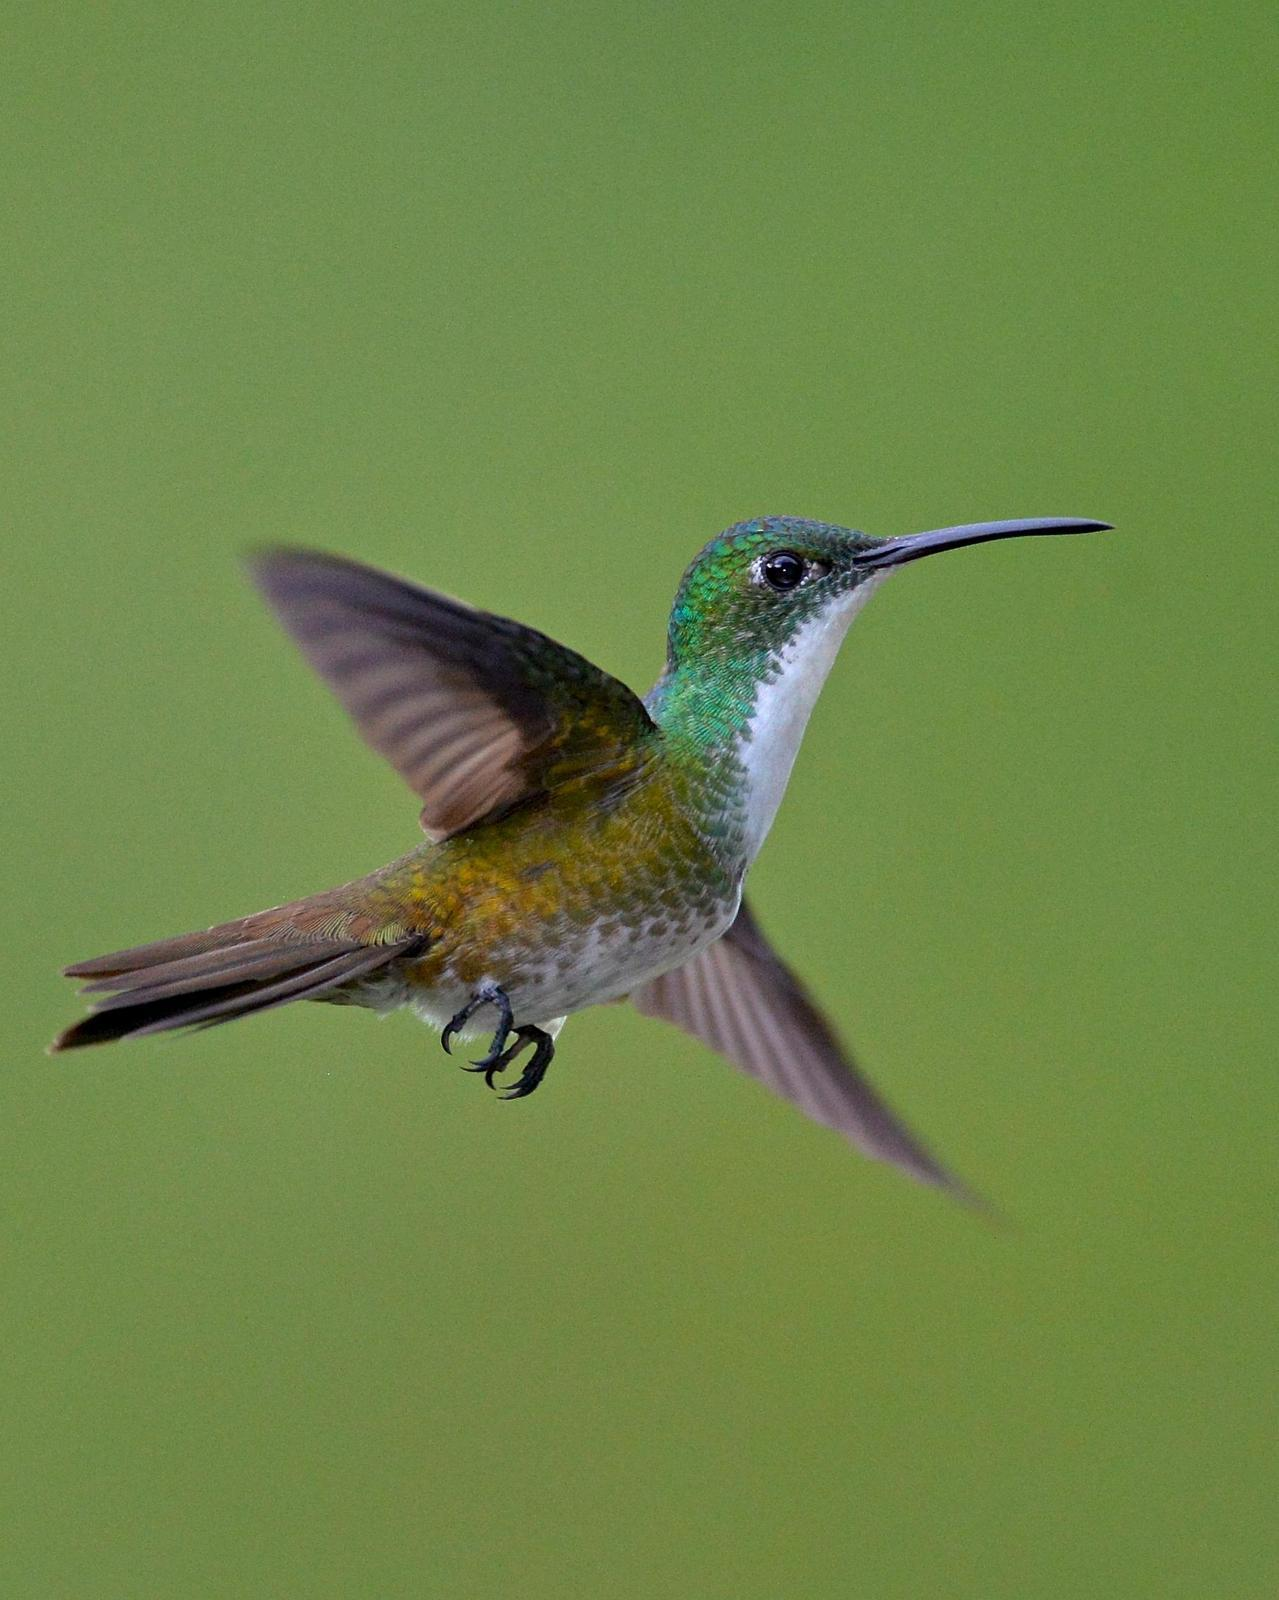 White-chested Emerald Photo by Gerald Friesen